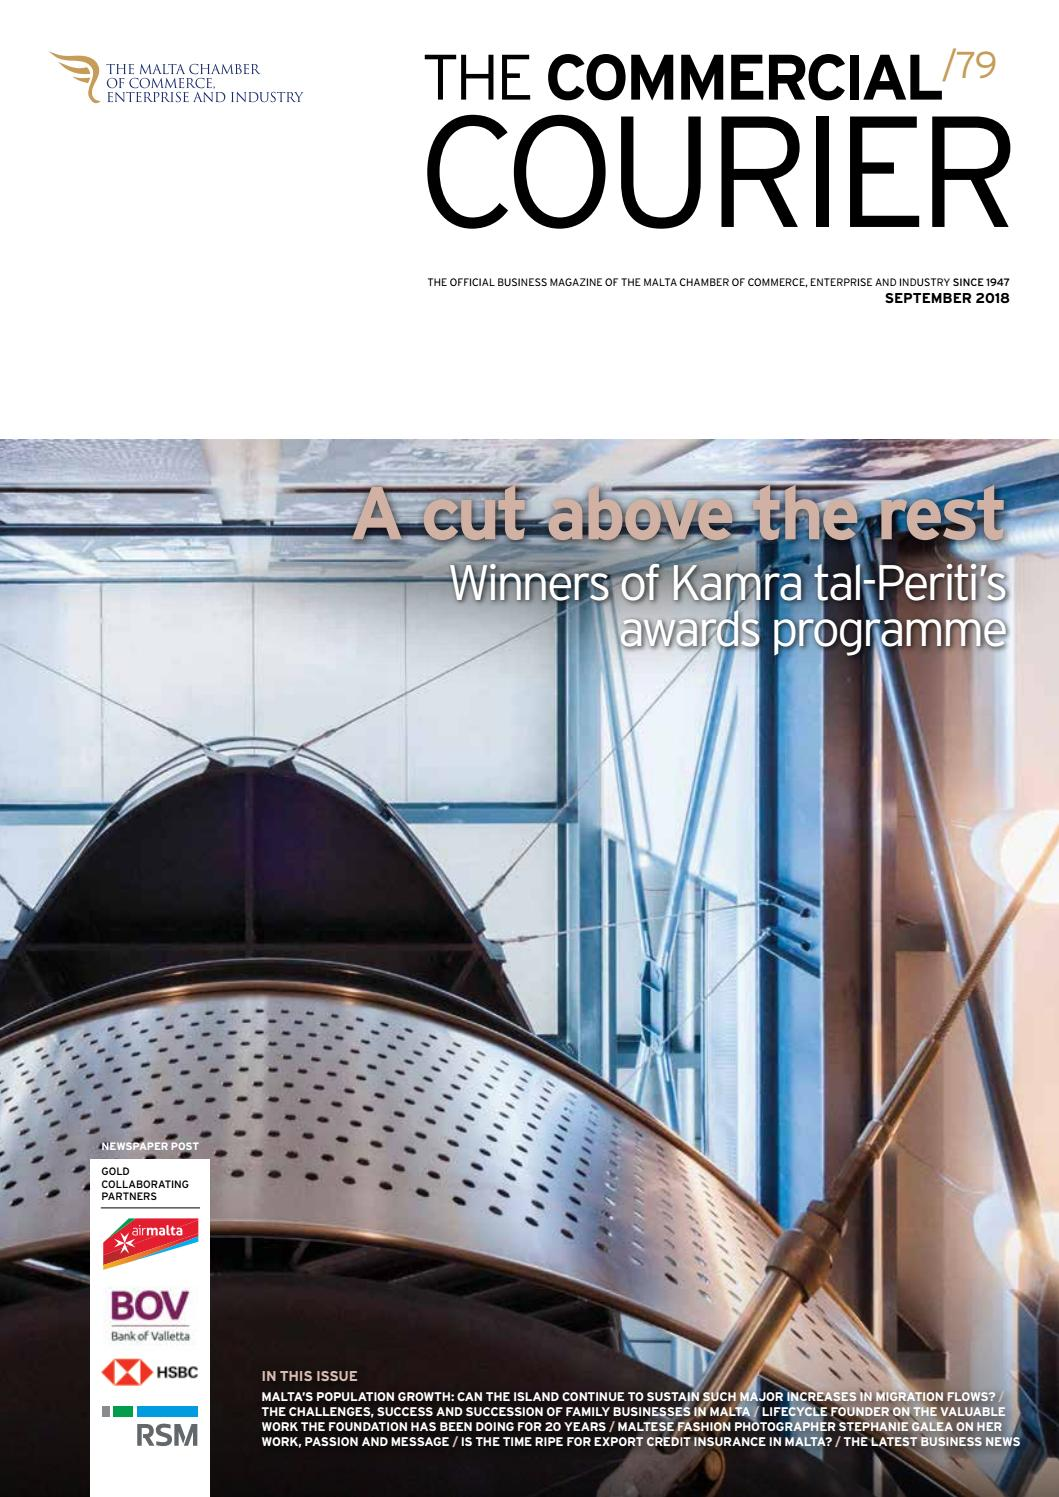 The Commercial Courier - September 2018 by Content House